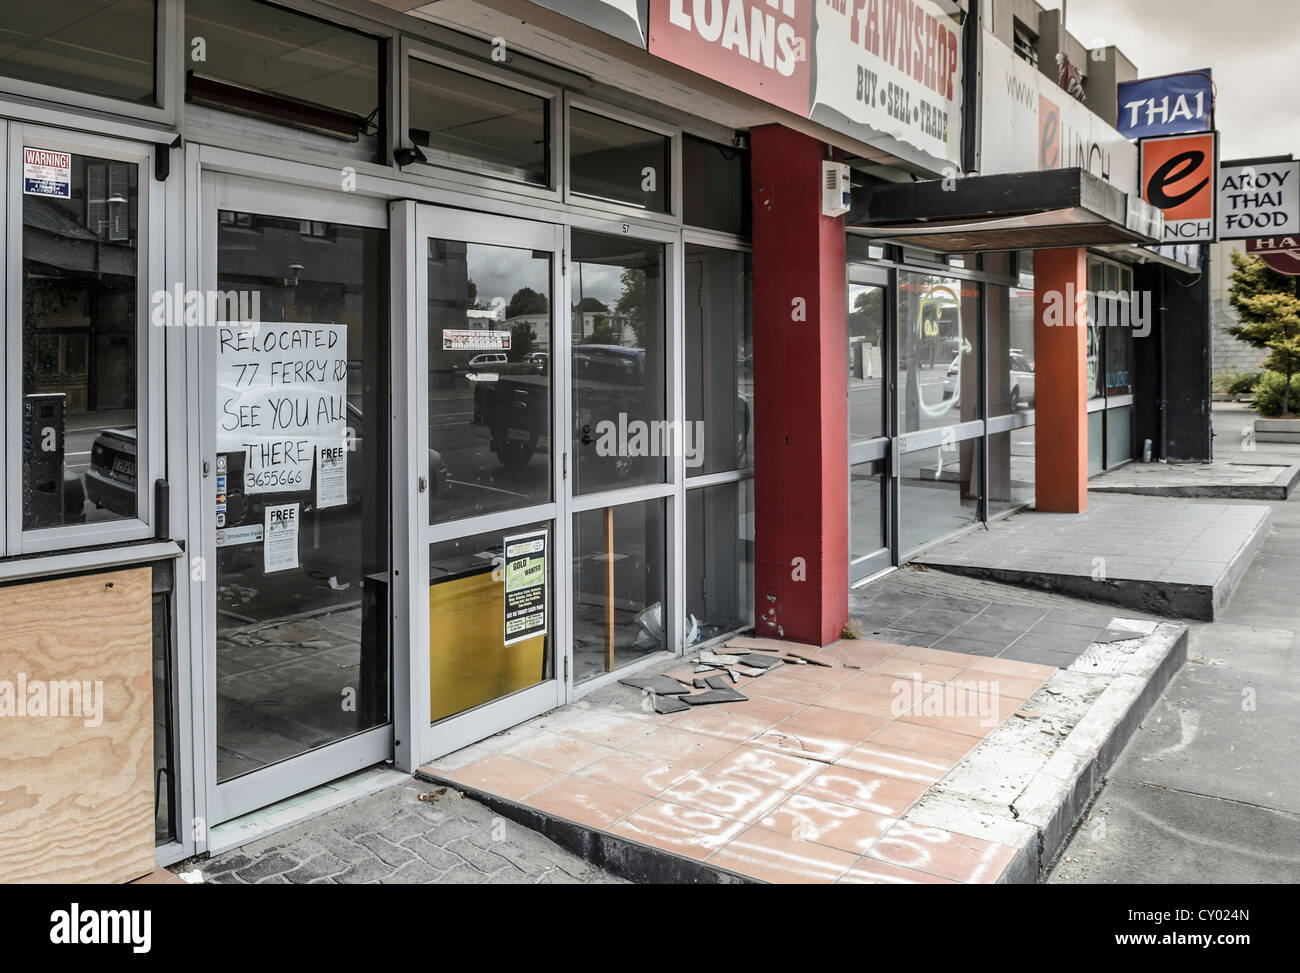 Empty shops in the evacuated CBD Red Zone, Christchurch, South Island, New Zealand - Stock Image